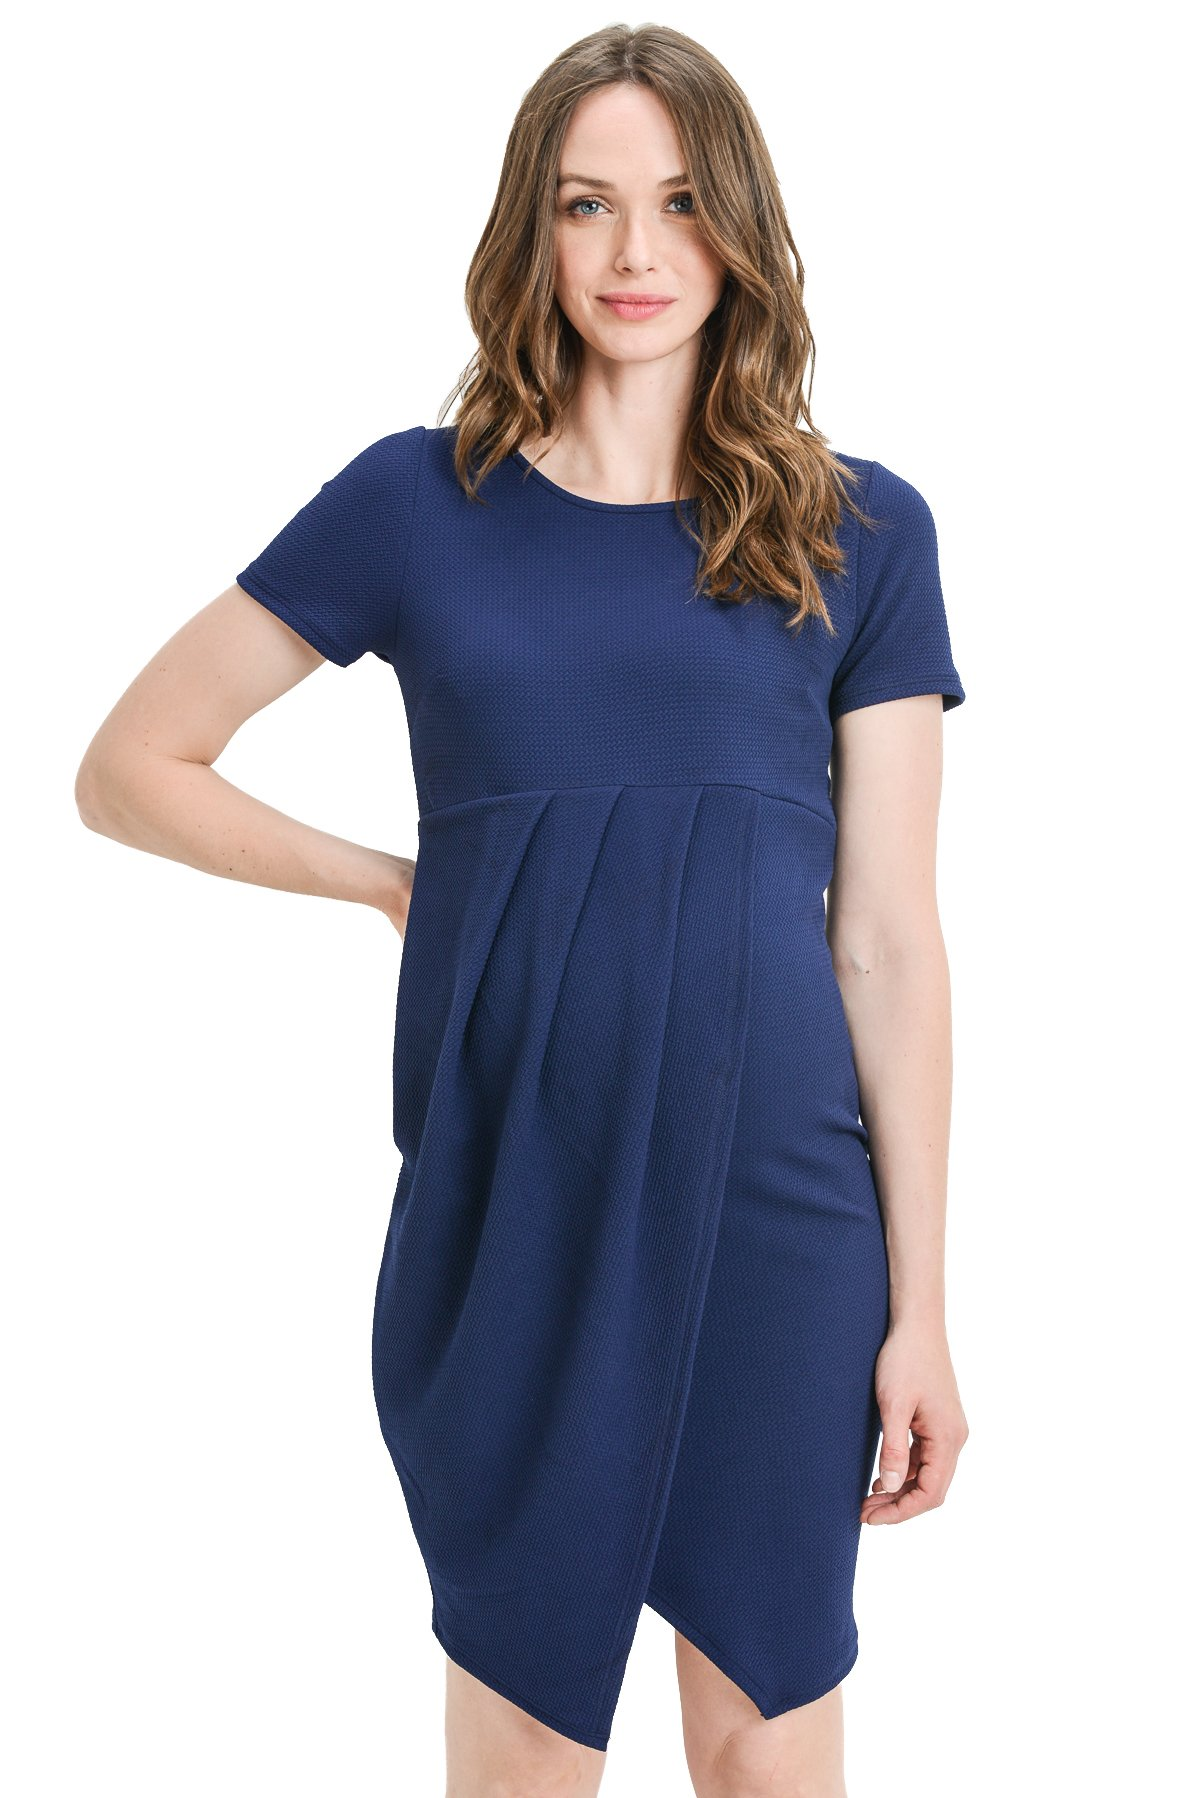 Hello MIZ Women's Short Sleeve Front Pleated Knee Length Midi Maternity Dress - Made in USA (X-Large, Navy)